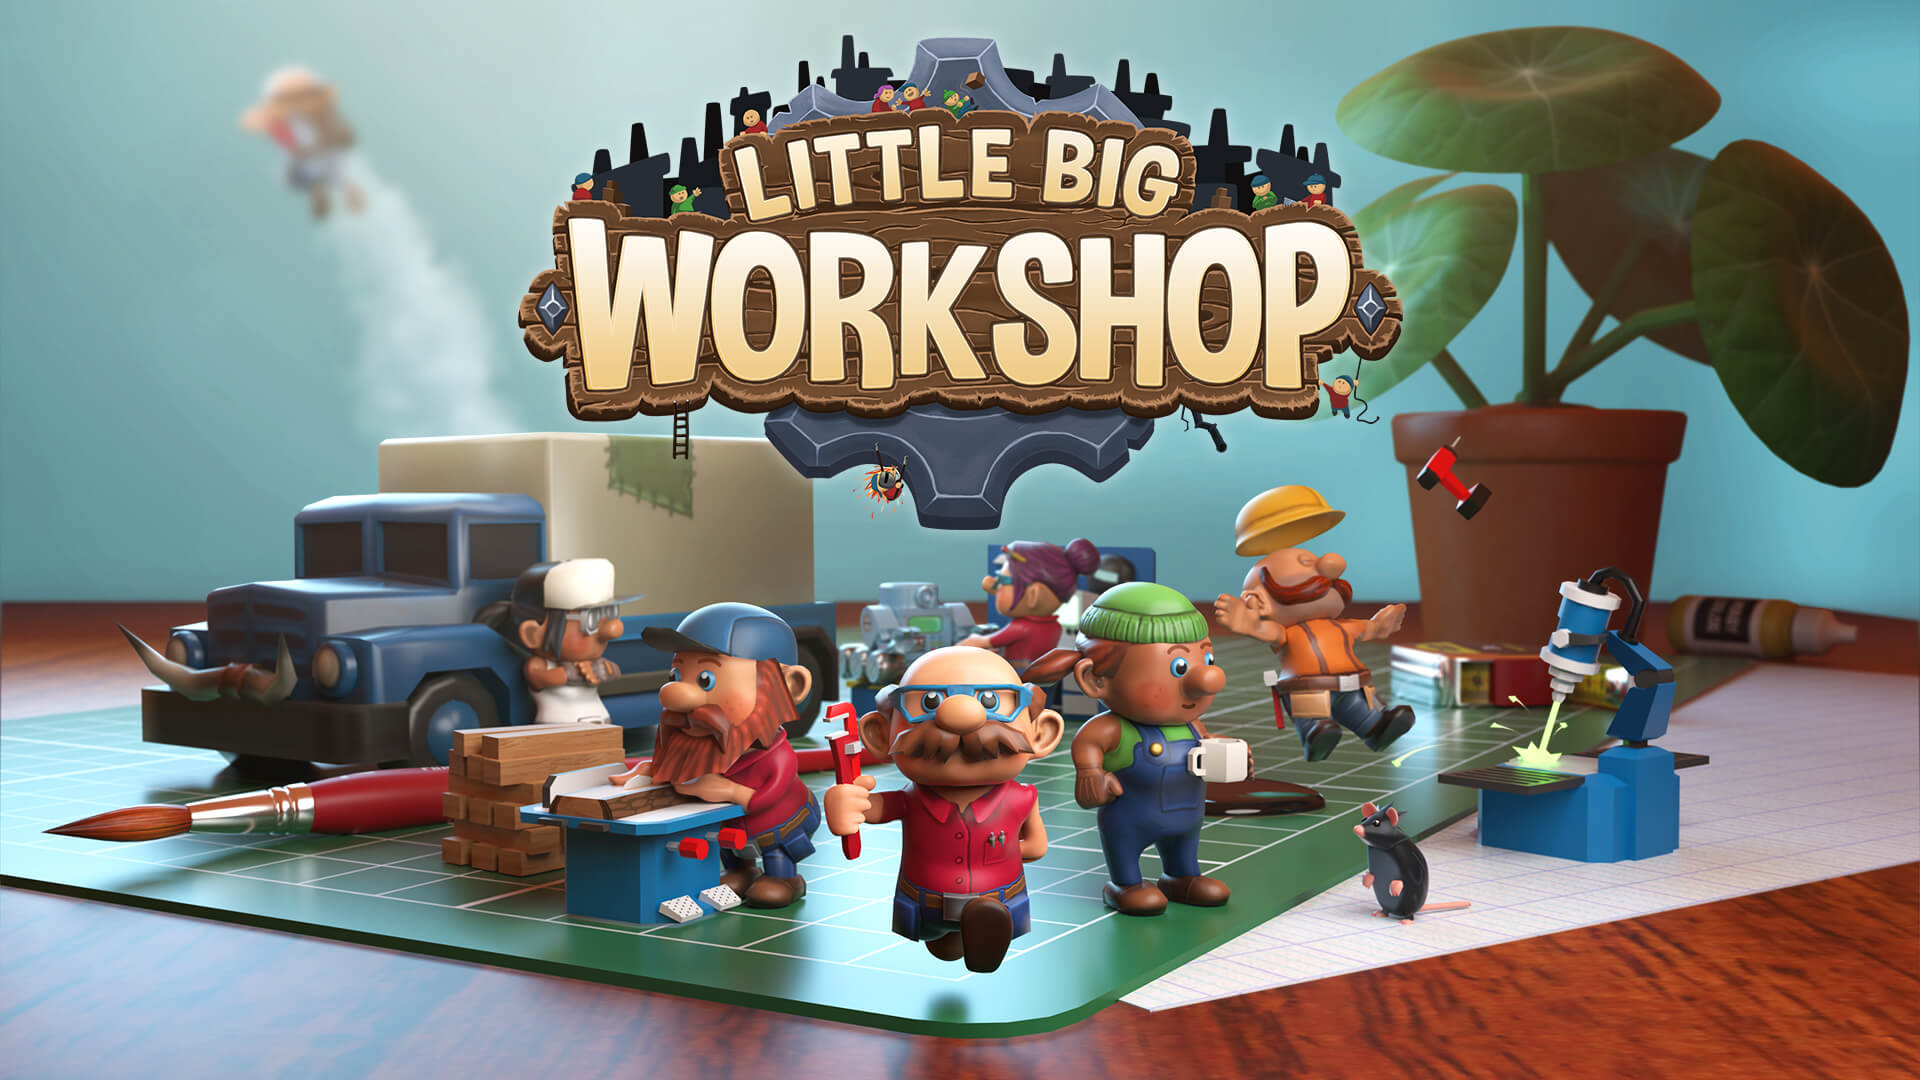 Sim Little Big Workshop Coming to Xbox One